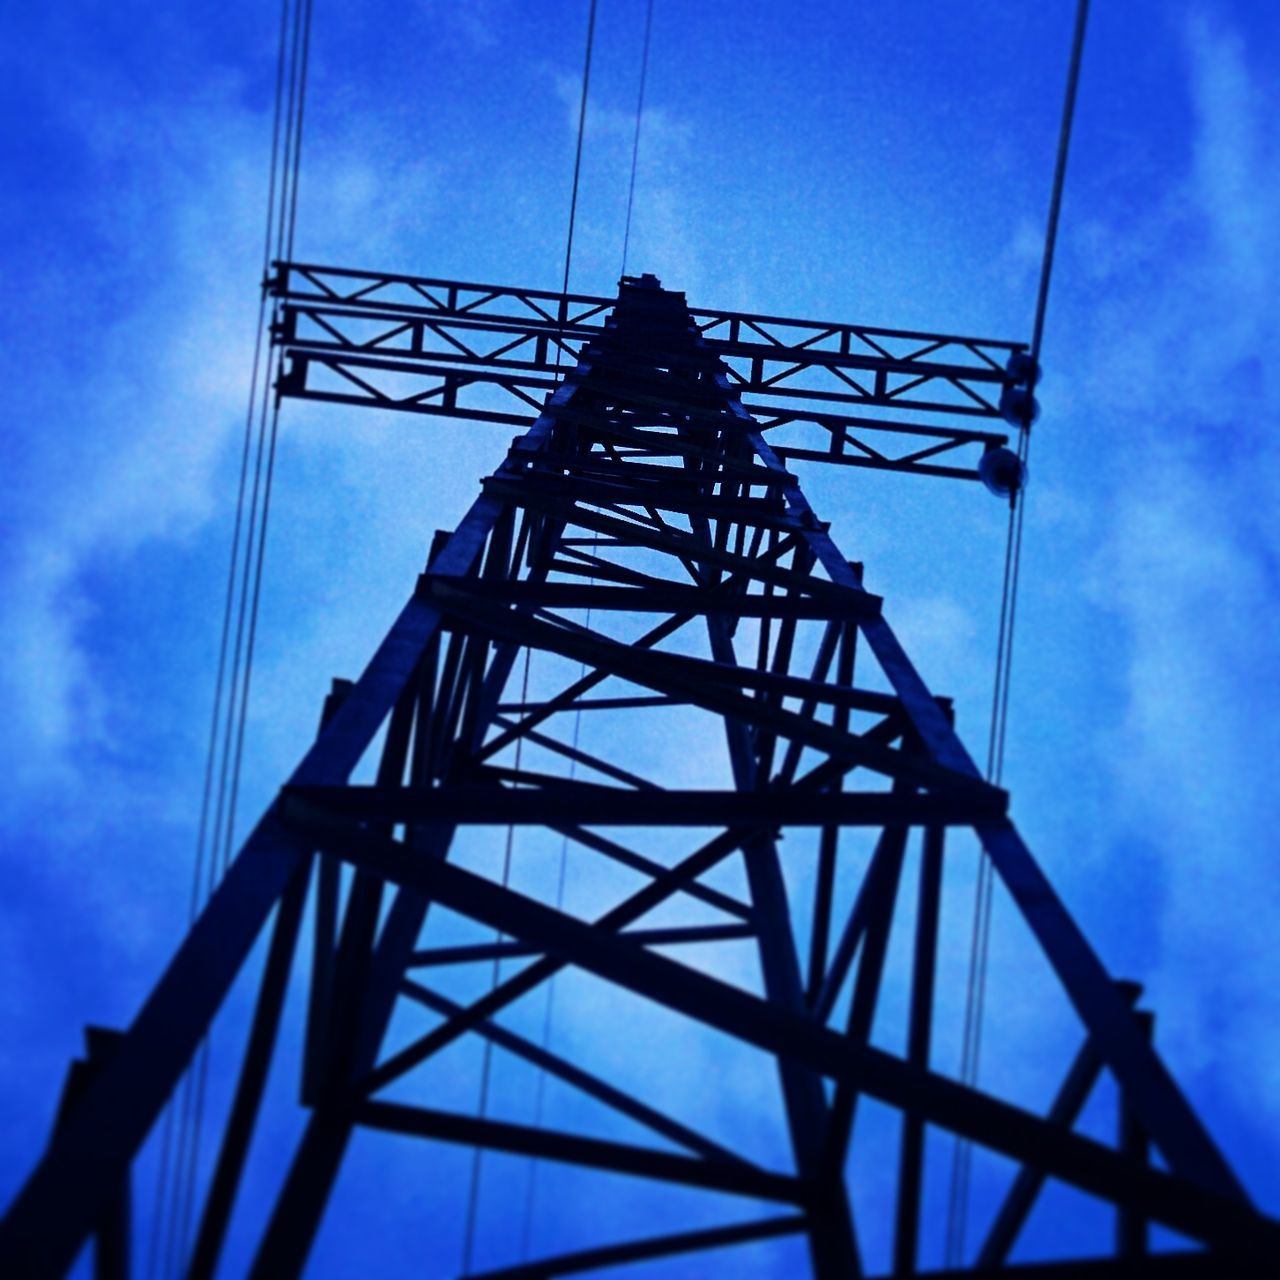 tower, cable, low angle view, silhouette, electricity pylon, sky, cloud - sky, day, architecture, built structure, outdoors, no people, water tower - storage tank